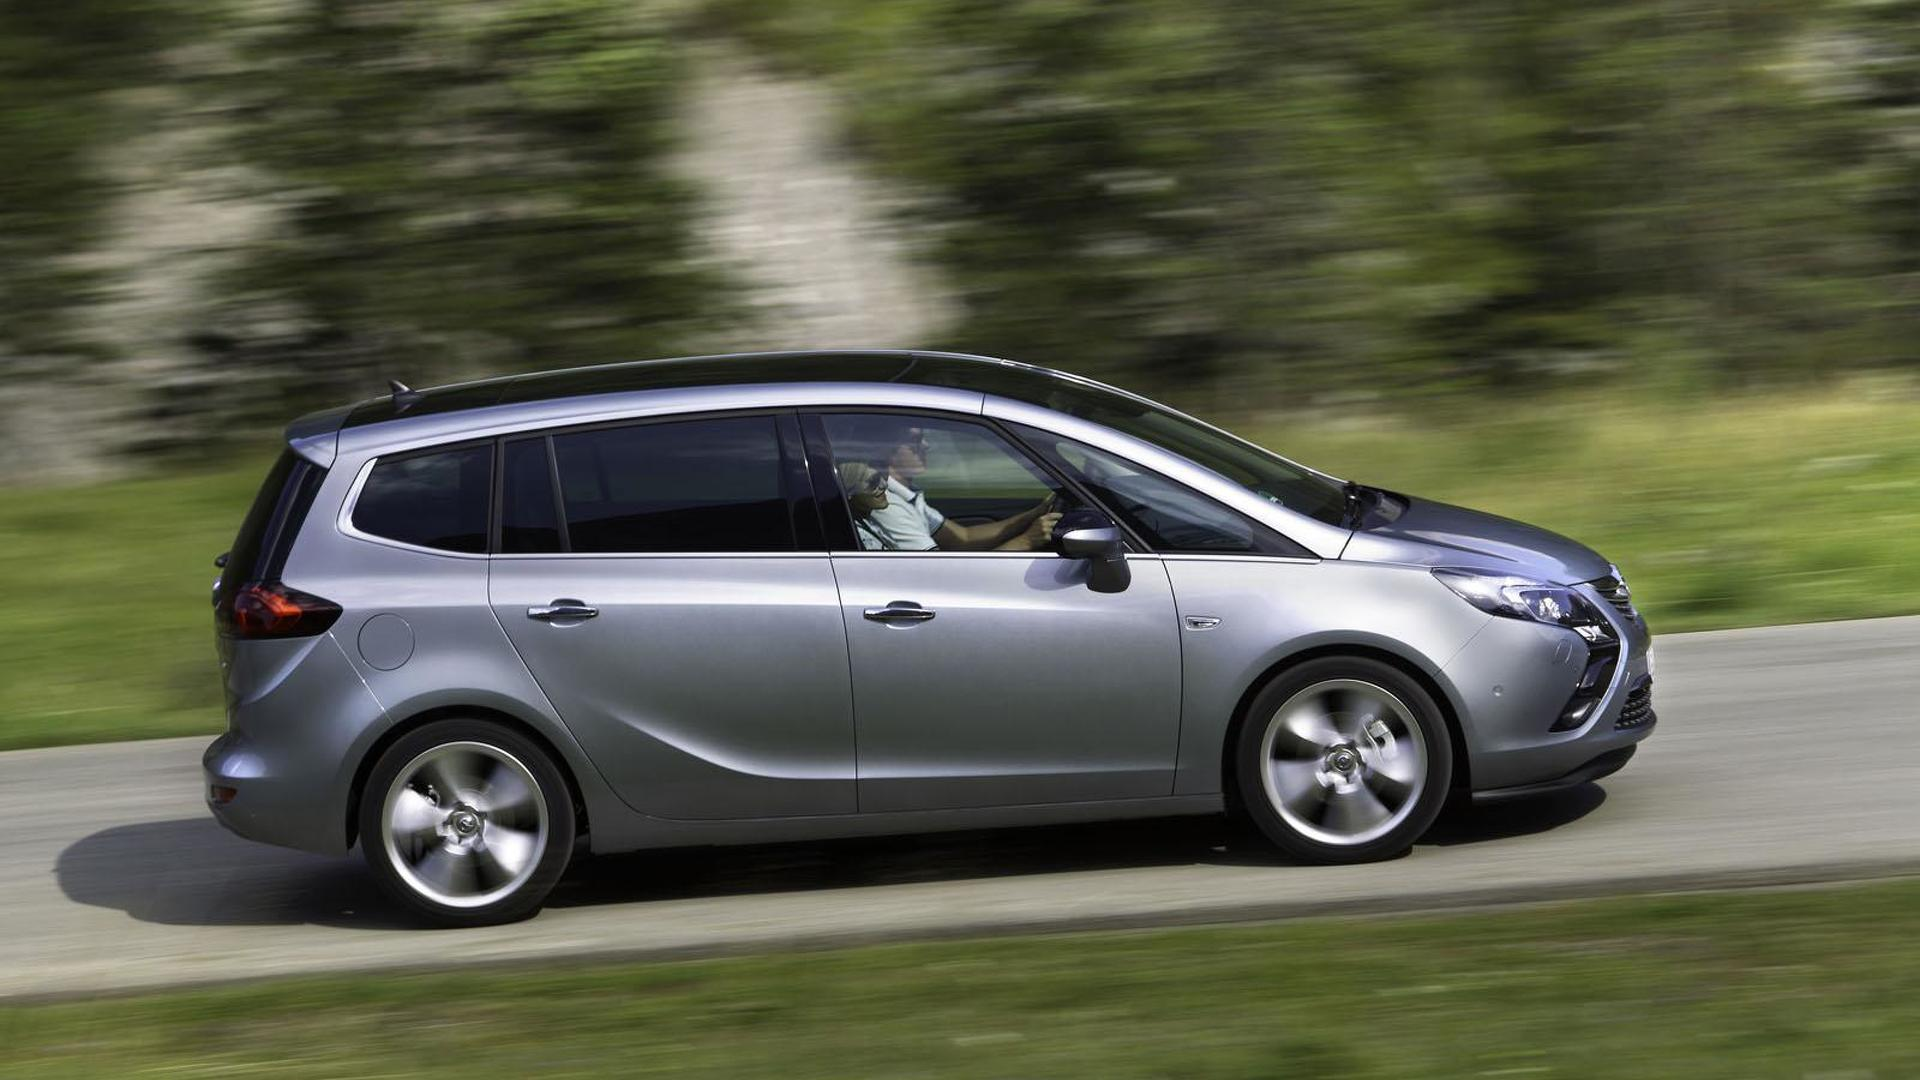 opel zafira tourer 1 6 sidi turbo announced with 200 hp. Black Bedroom Furniture Sets. Home Design Ideas